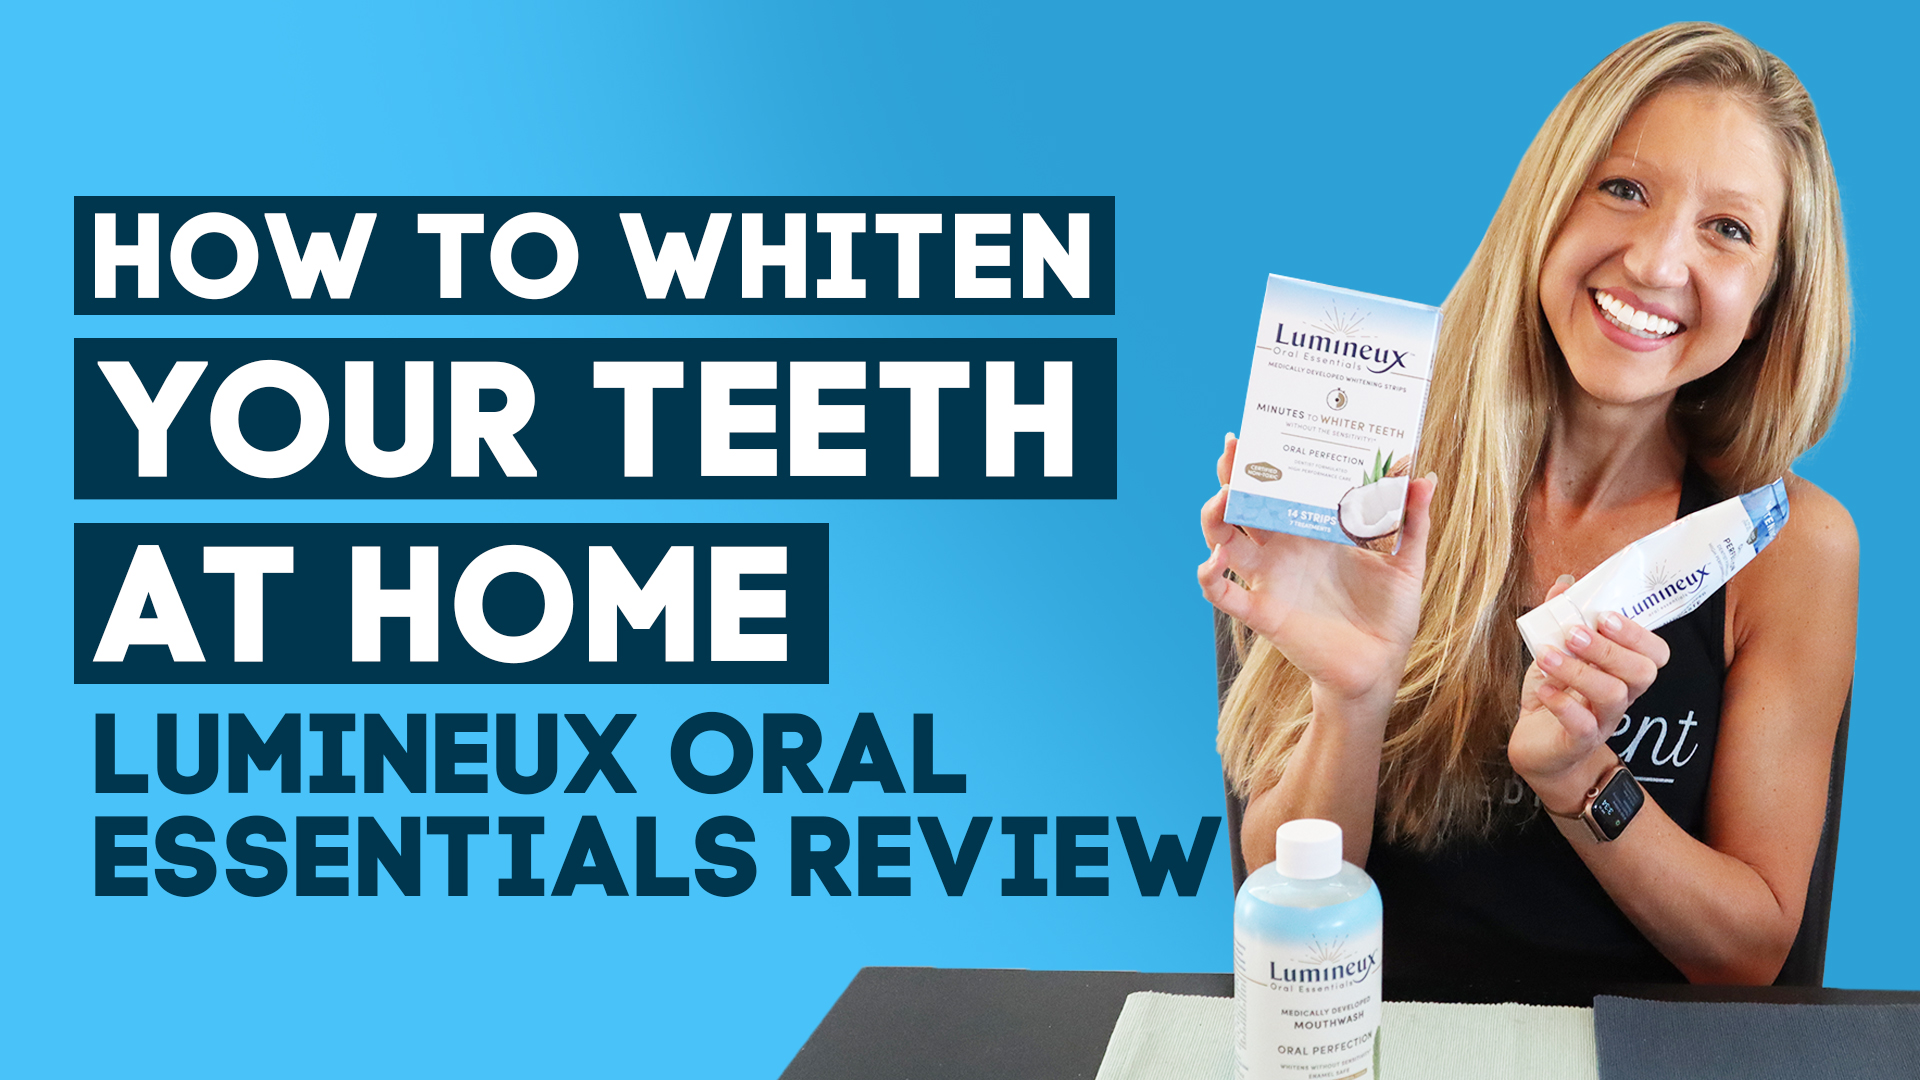 How To Whiten Teeth At Home Naturally Fast Lumineux Oral Essentials Review